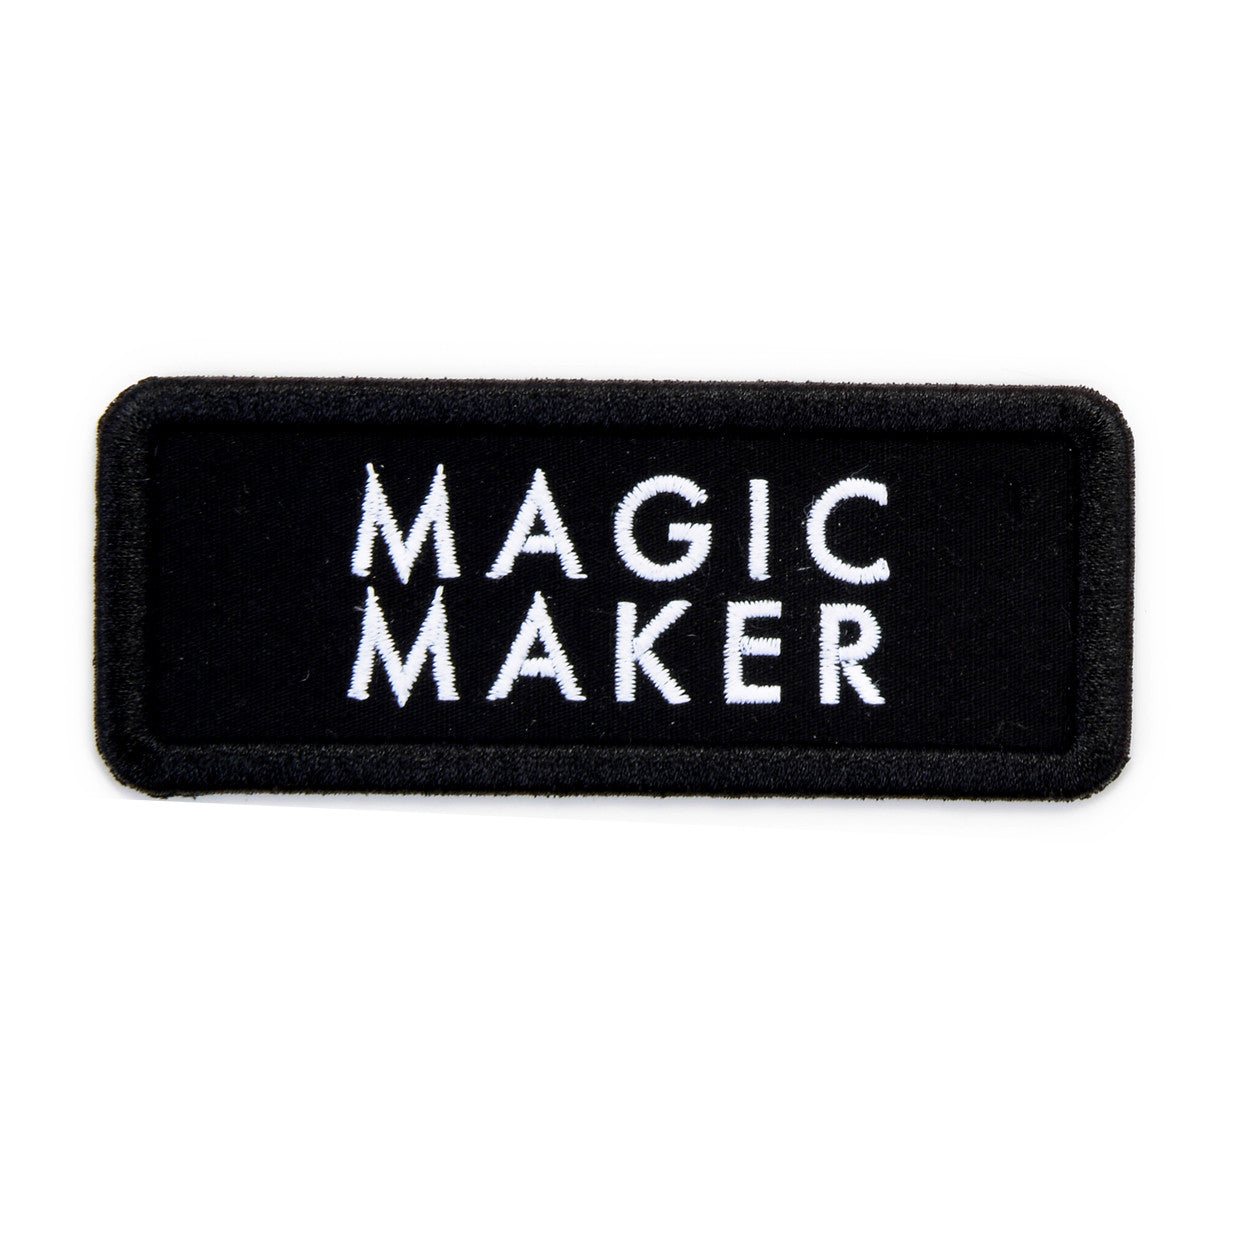 Magic Maker Patch - Bing Bang Jewelry NYC